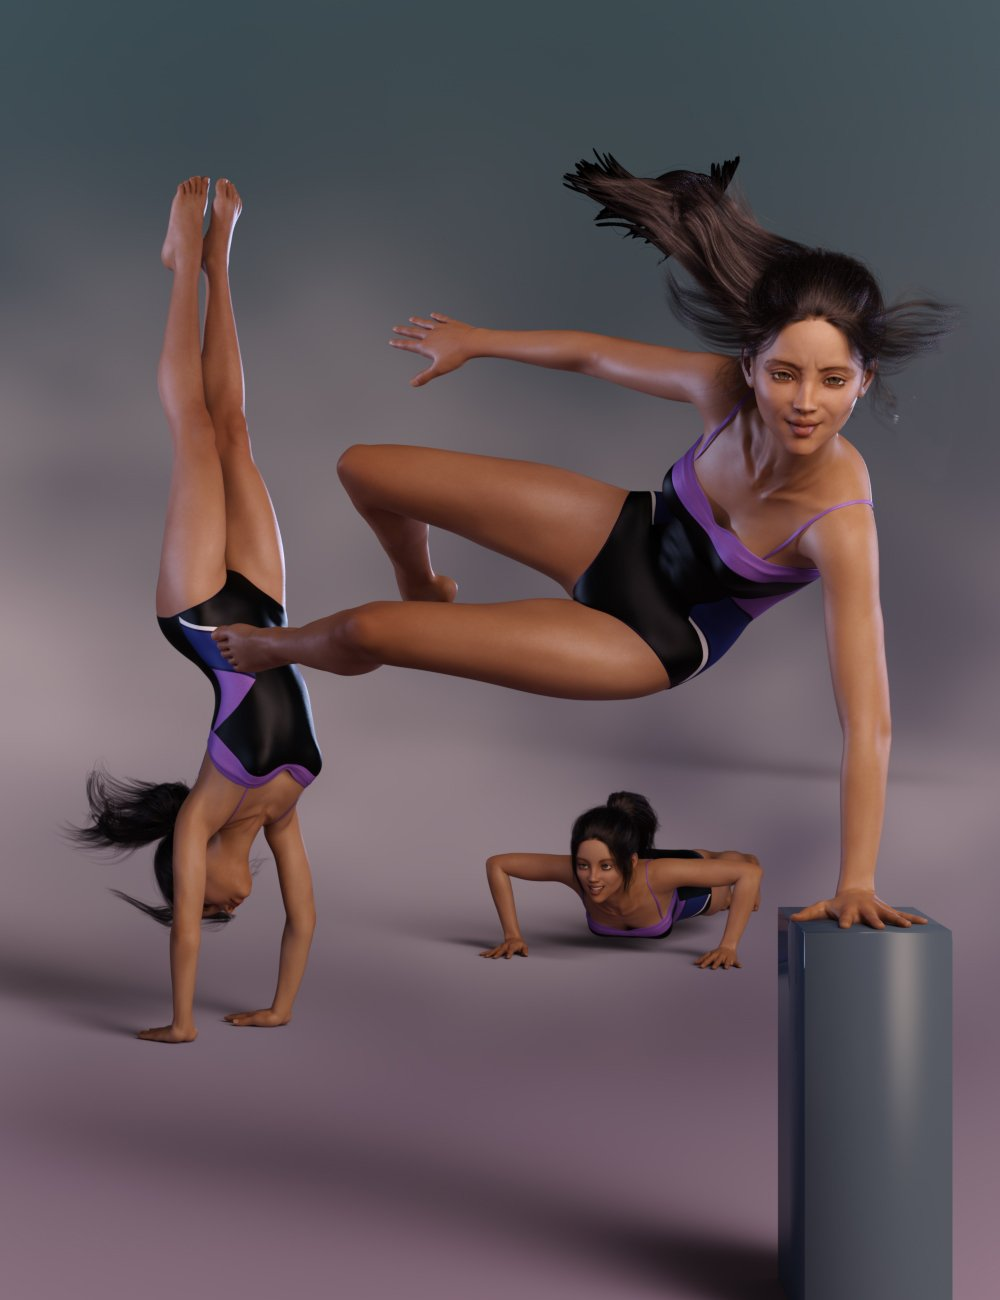 Action Poses for Teen Kaylee 8 and Genesis 8 Female by: lunchlady, 3D Models by Daz 3D